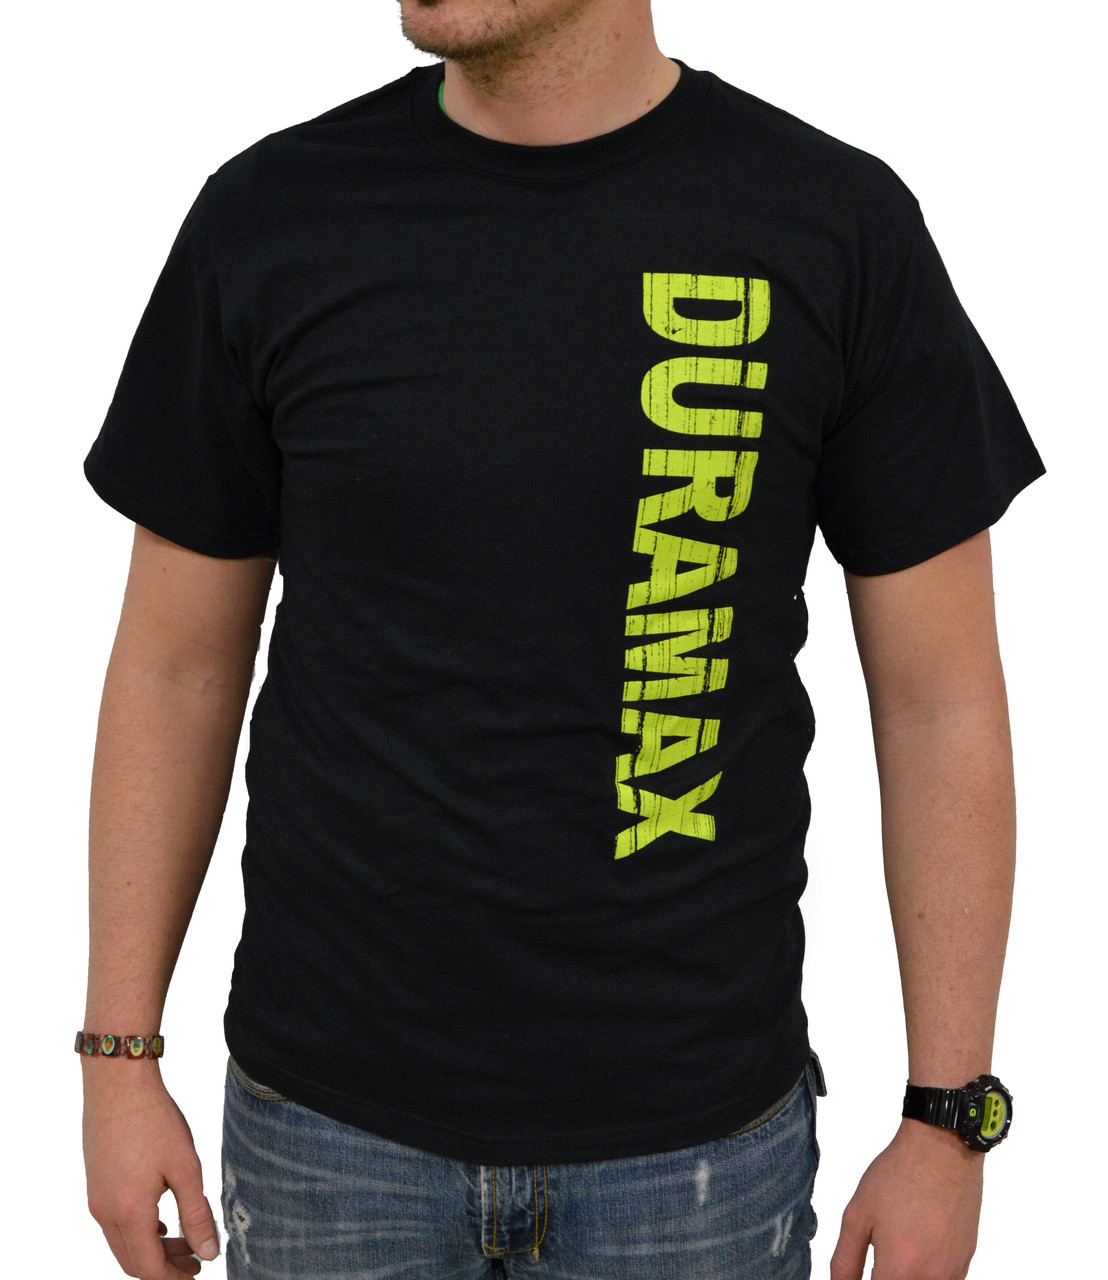 DuramaxGear - Vertical Duramax Tee - Black and Neon (T14009-N)